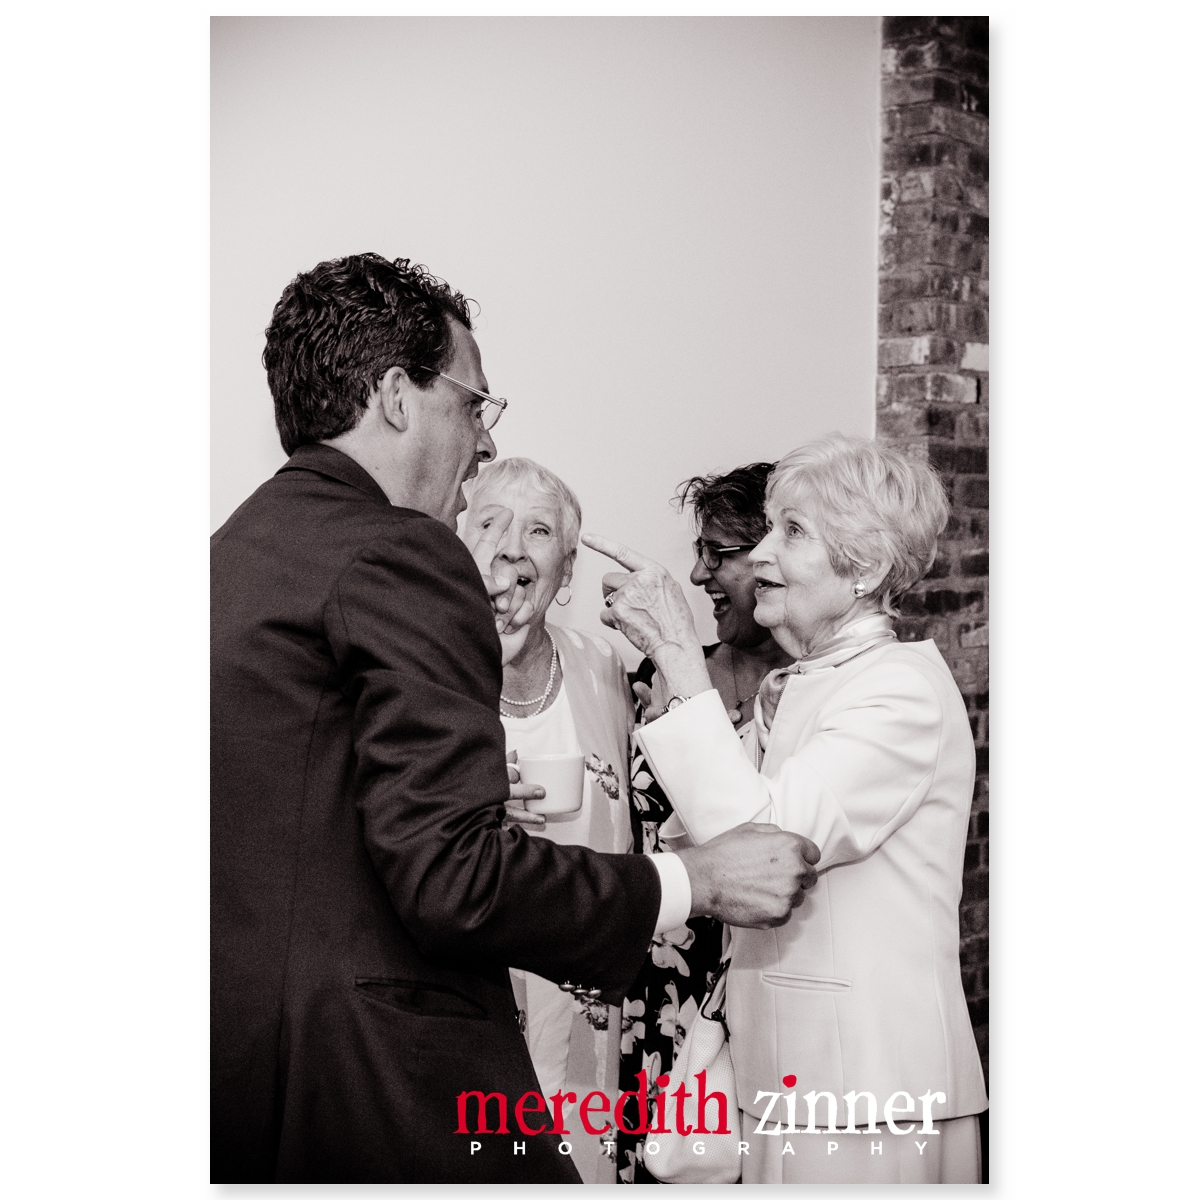 Meredith_Zinner_Photography_StilesCelebration_0375